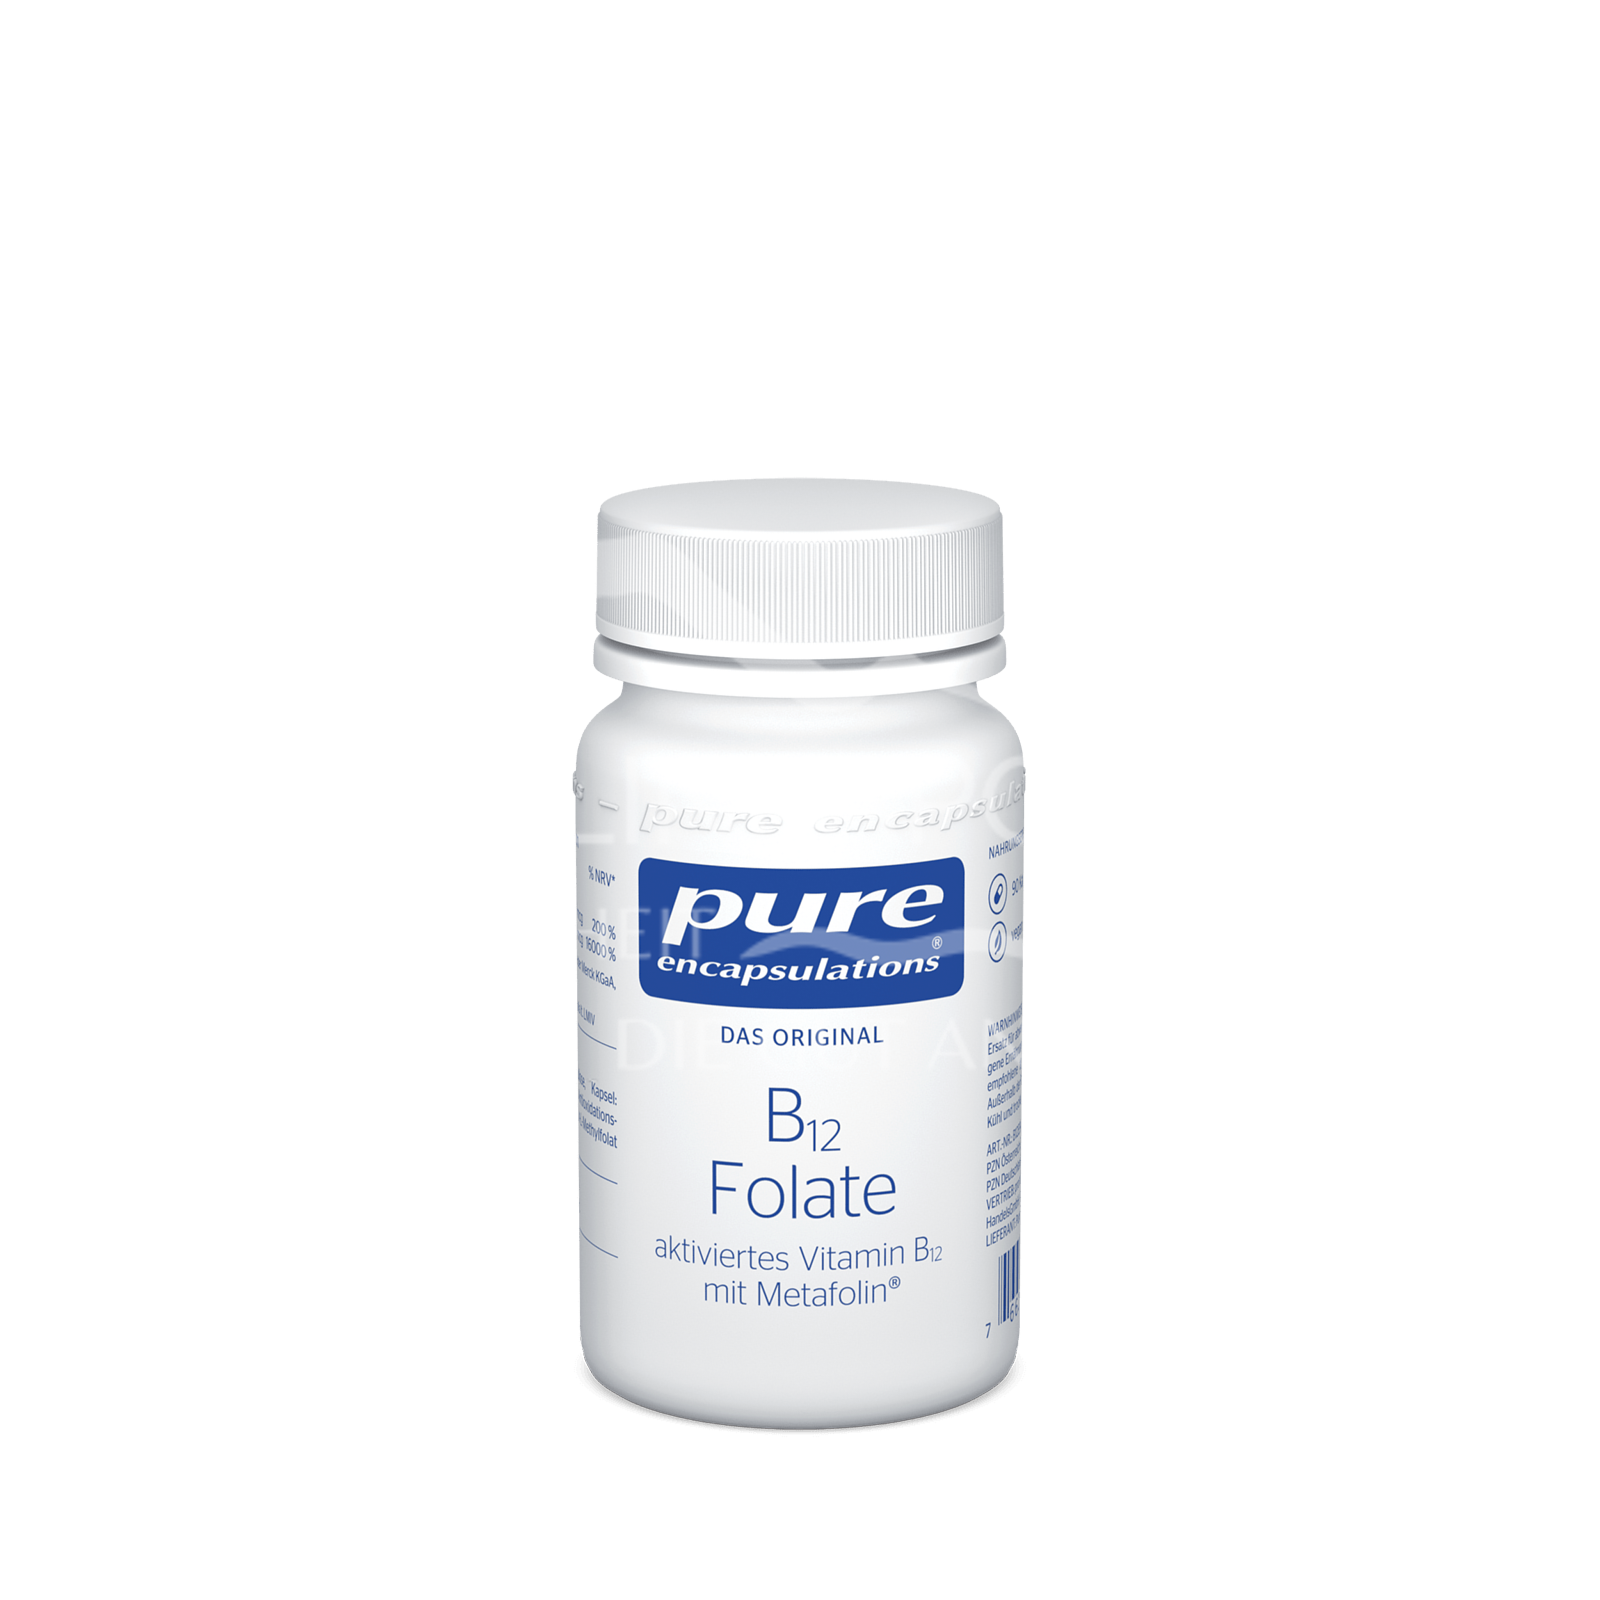 pure encapsulations® B12 Folate